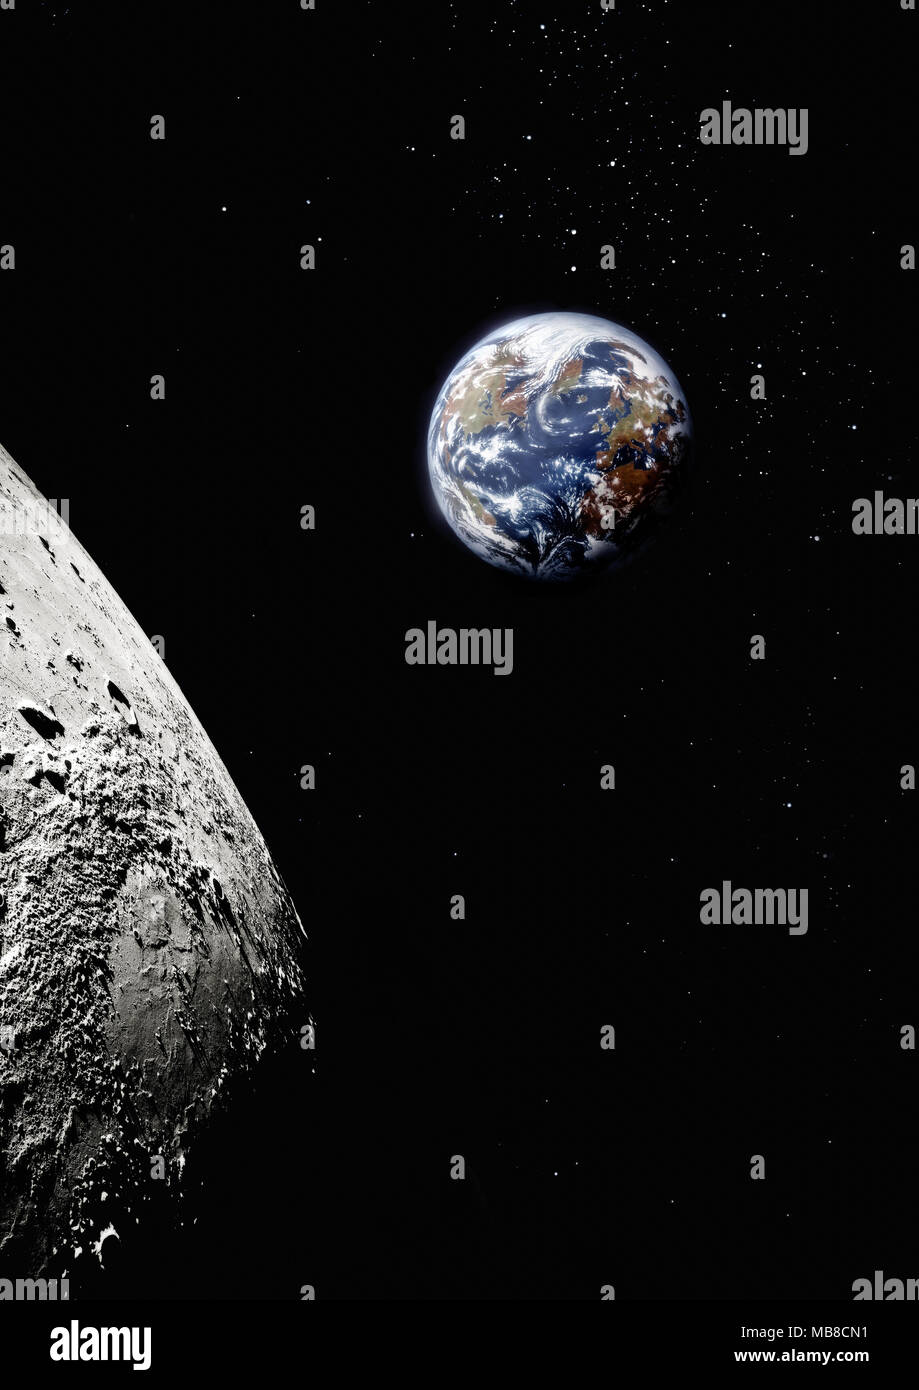 Planet earth from space with surface of the moon in foreground, North America and Europe visible - Stock Image